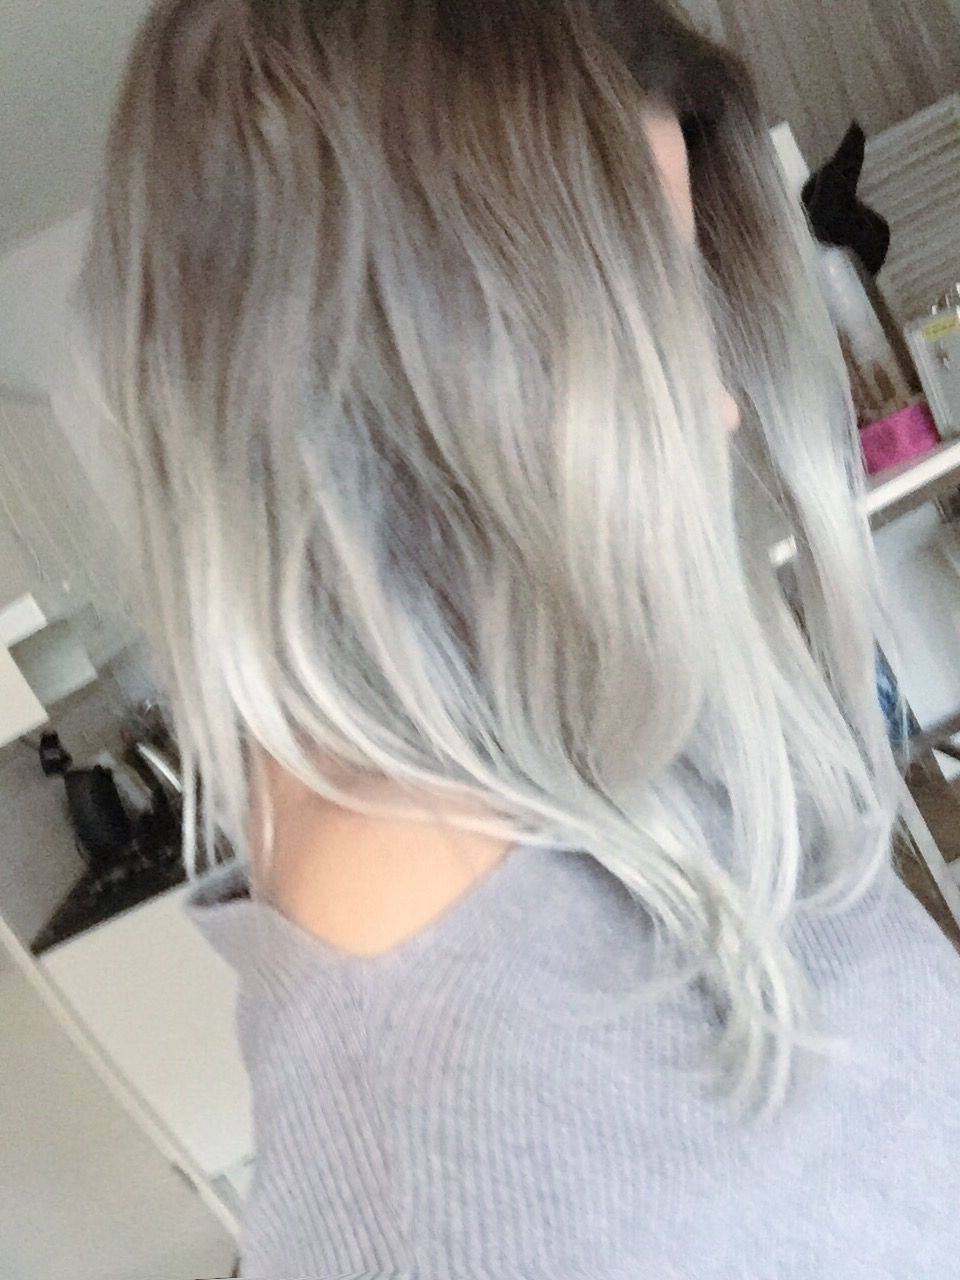 Grey / Silver Hair: Dark Grey Roots And Light Silver, Platinum Regarding Most Current Grayscale Ombre Blonde Hairstyles (View 8 of 20)